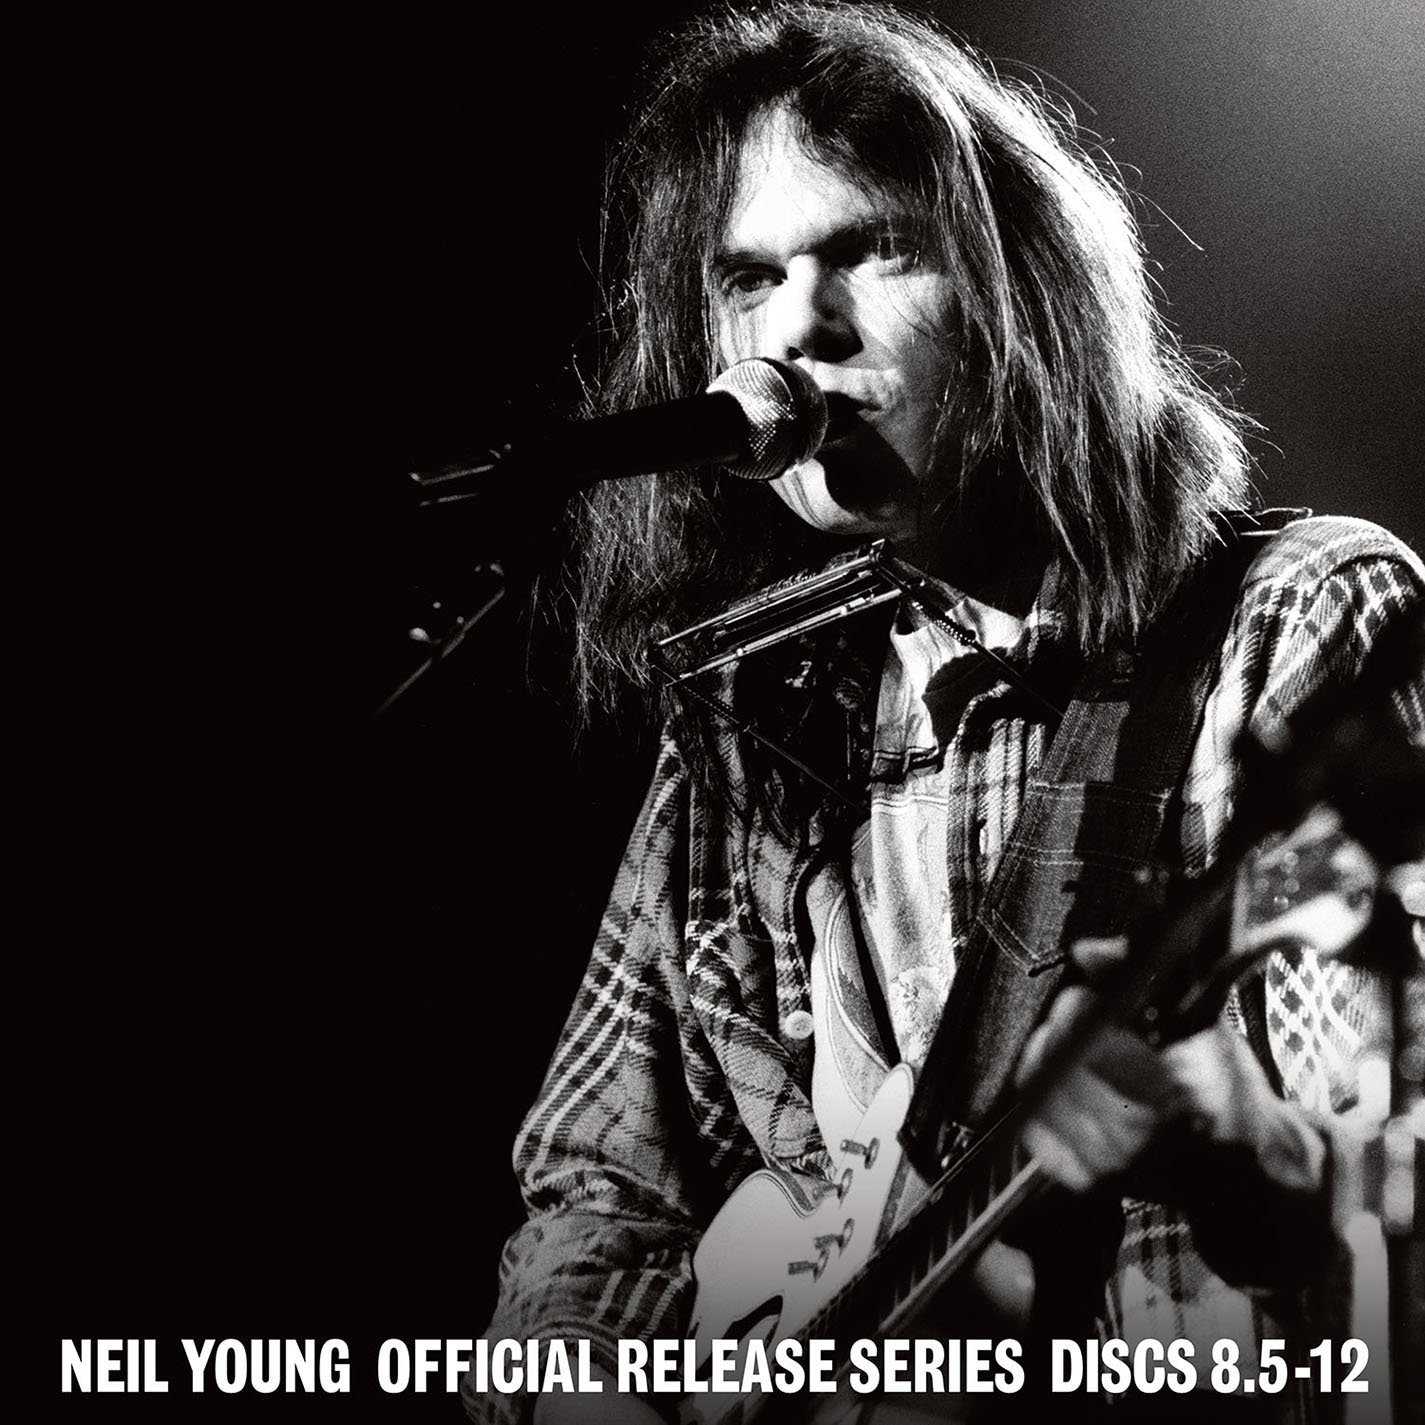 Under The Rusted Moon All About Neil Young